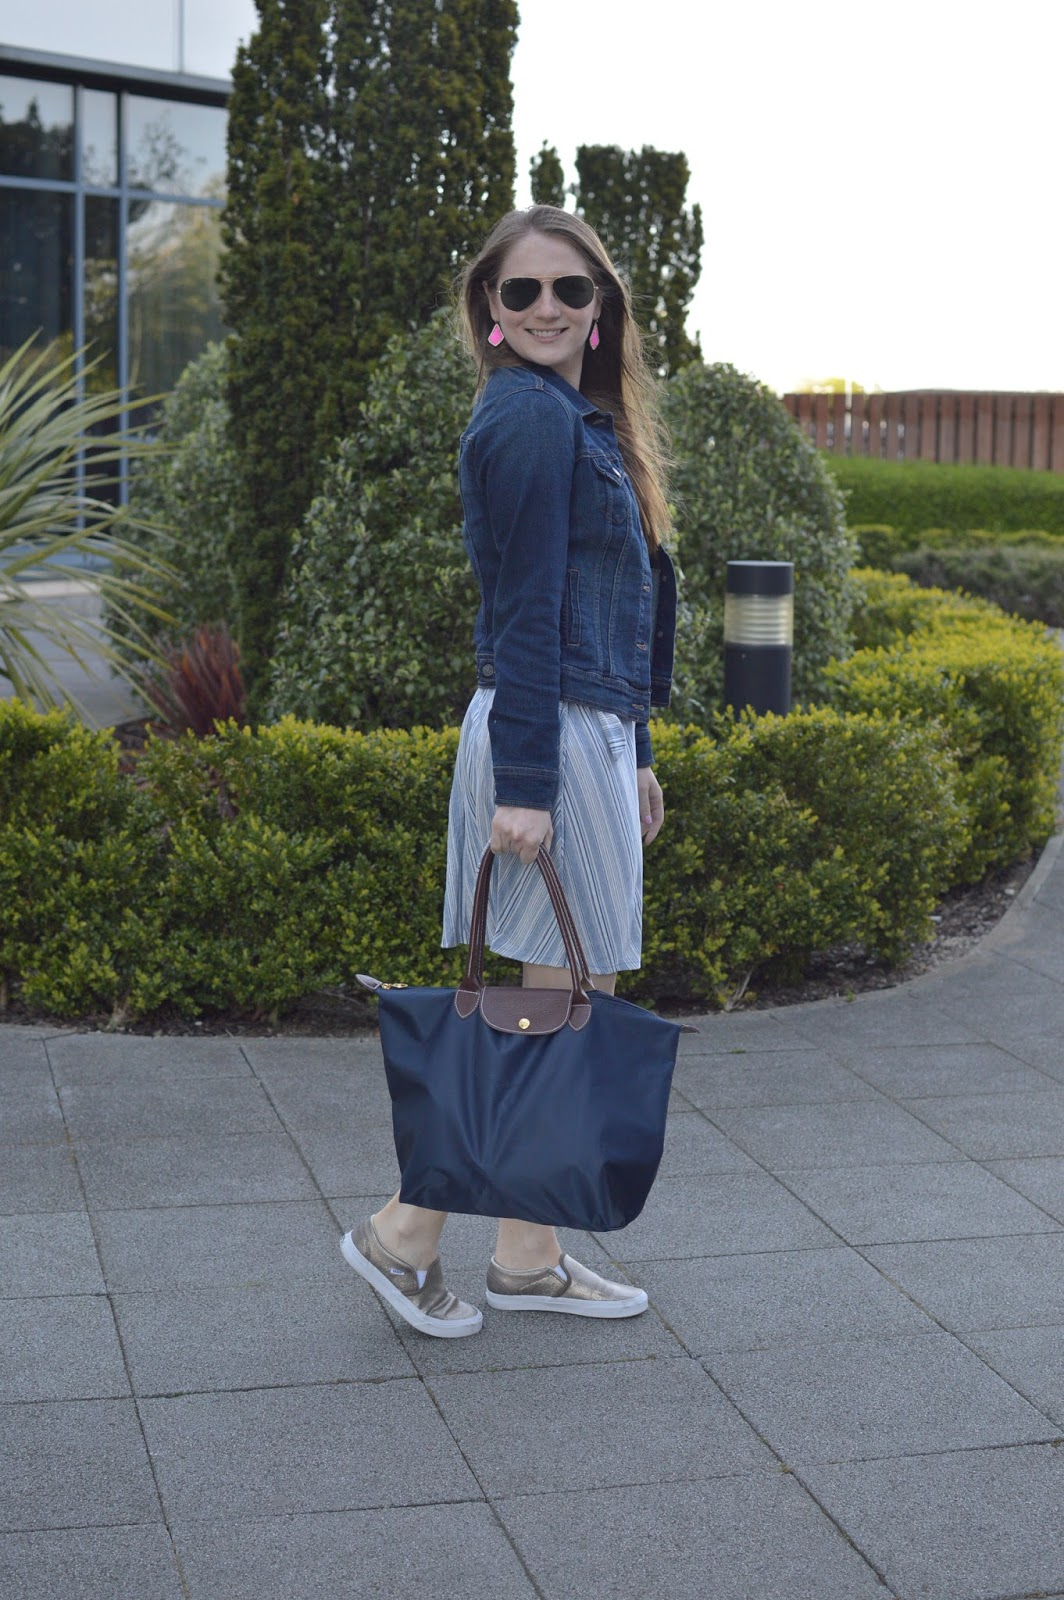 jean jacket over a dress | ways to style a denim jacket | spring outfit ideas | casual spring looks | dresses with sneakers | a memory of us | navy longchamp bag